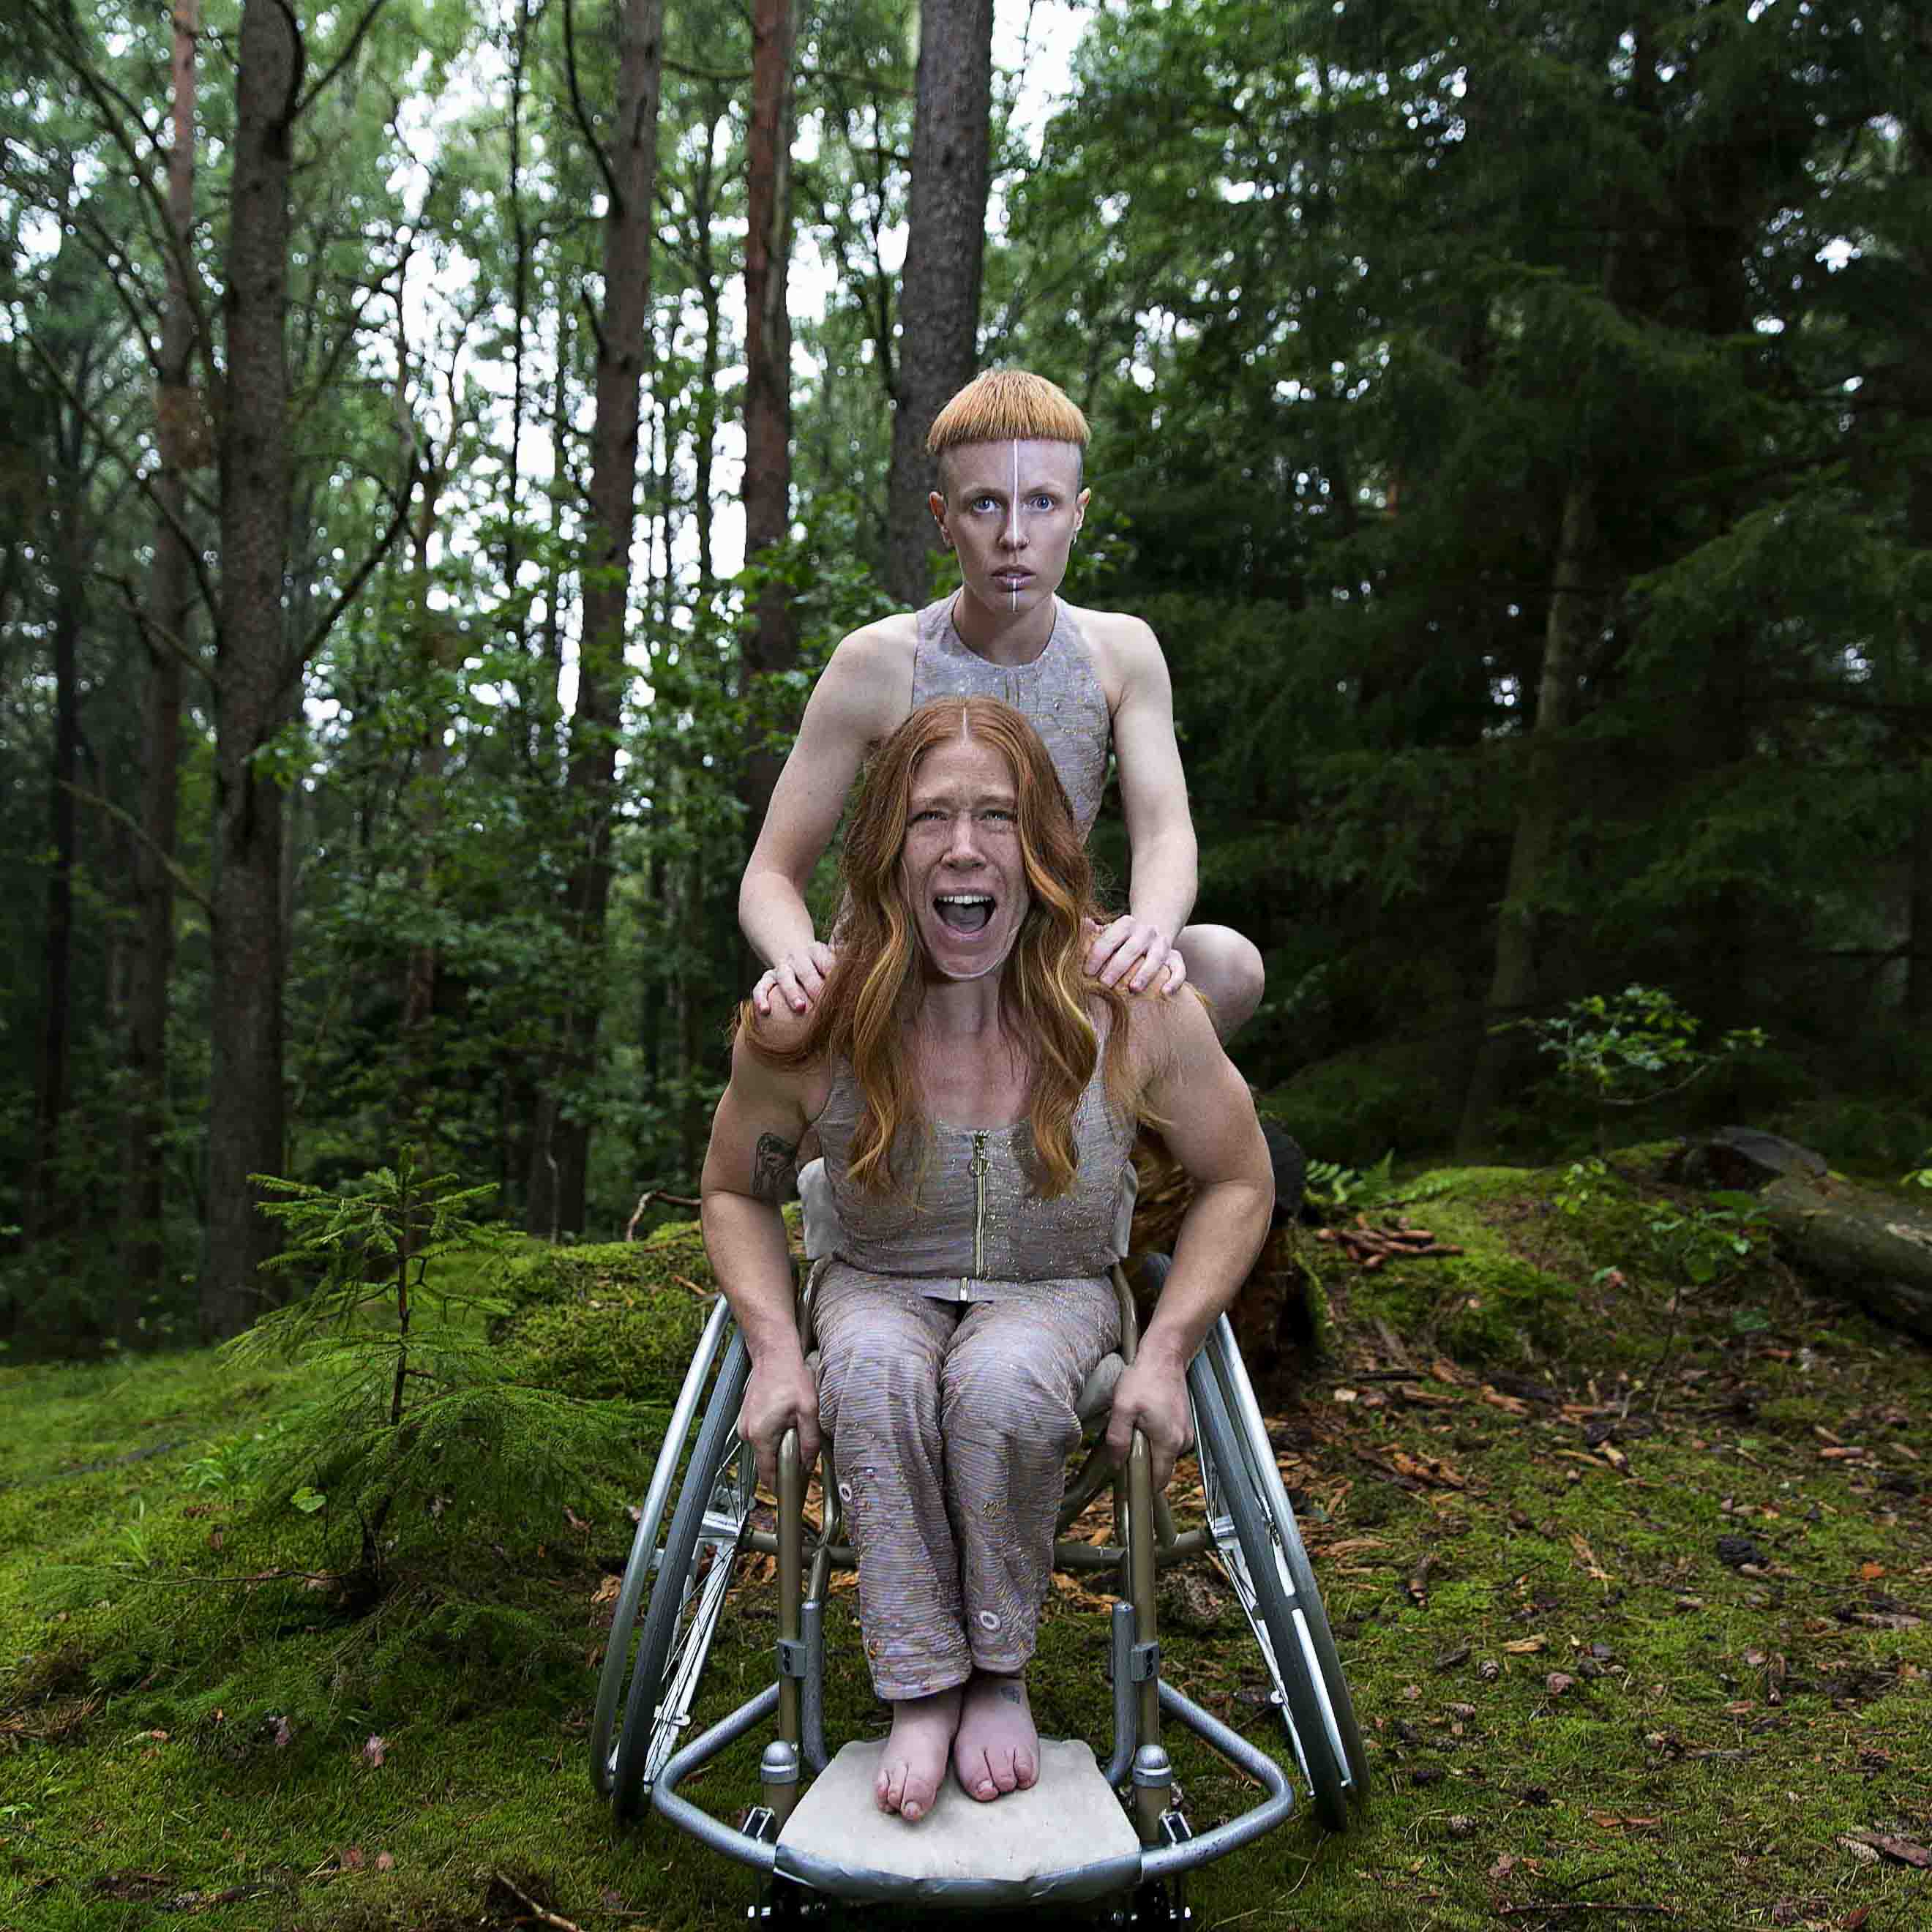 Image for the performance Hannah Felicia. The image depicts the dances in a forest, wearing costumes shimmering in pink. Felicia is sitting in a wheelchair with her arms on the wheels, with flowing red hair she screams directly into the camera. Hannah is crouched behind Felicia on the wheelchair, looking straight into the camera. Photo: Anna Ósk Erlingsdóttir